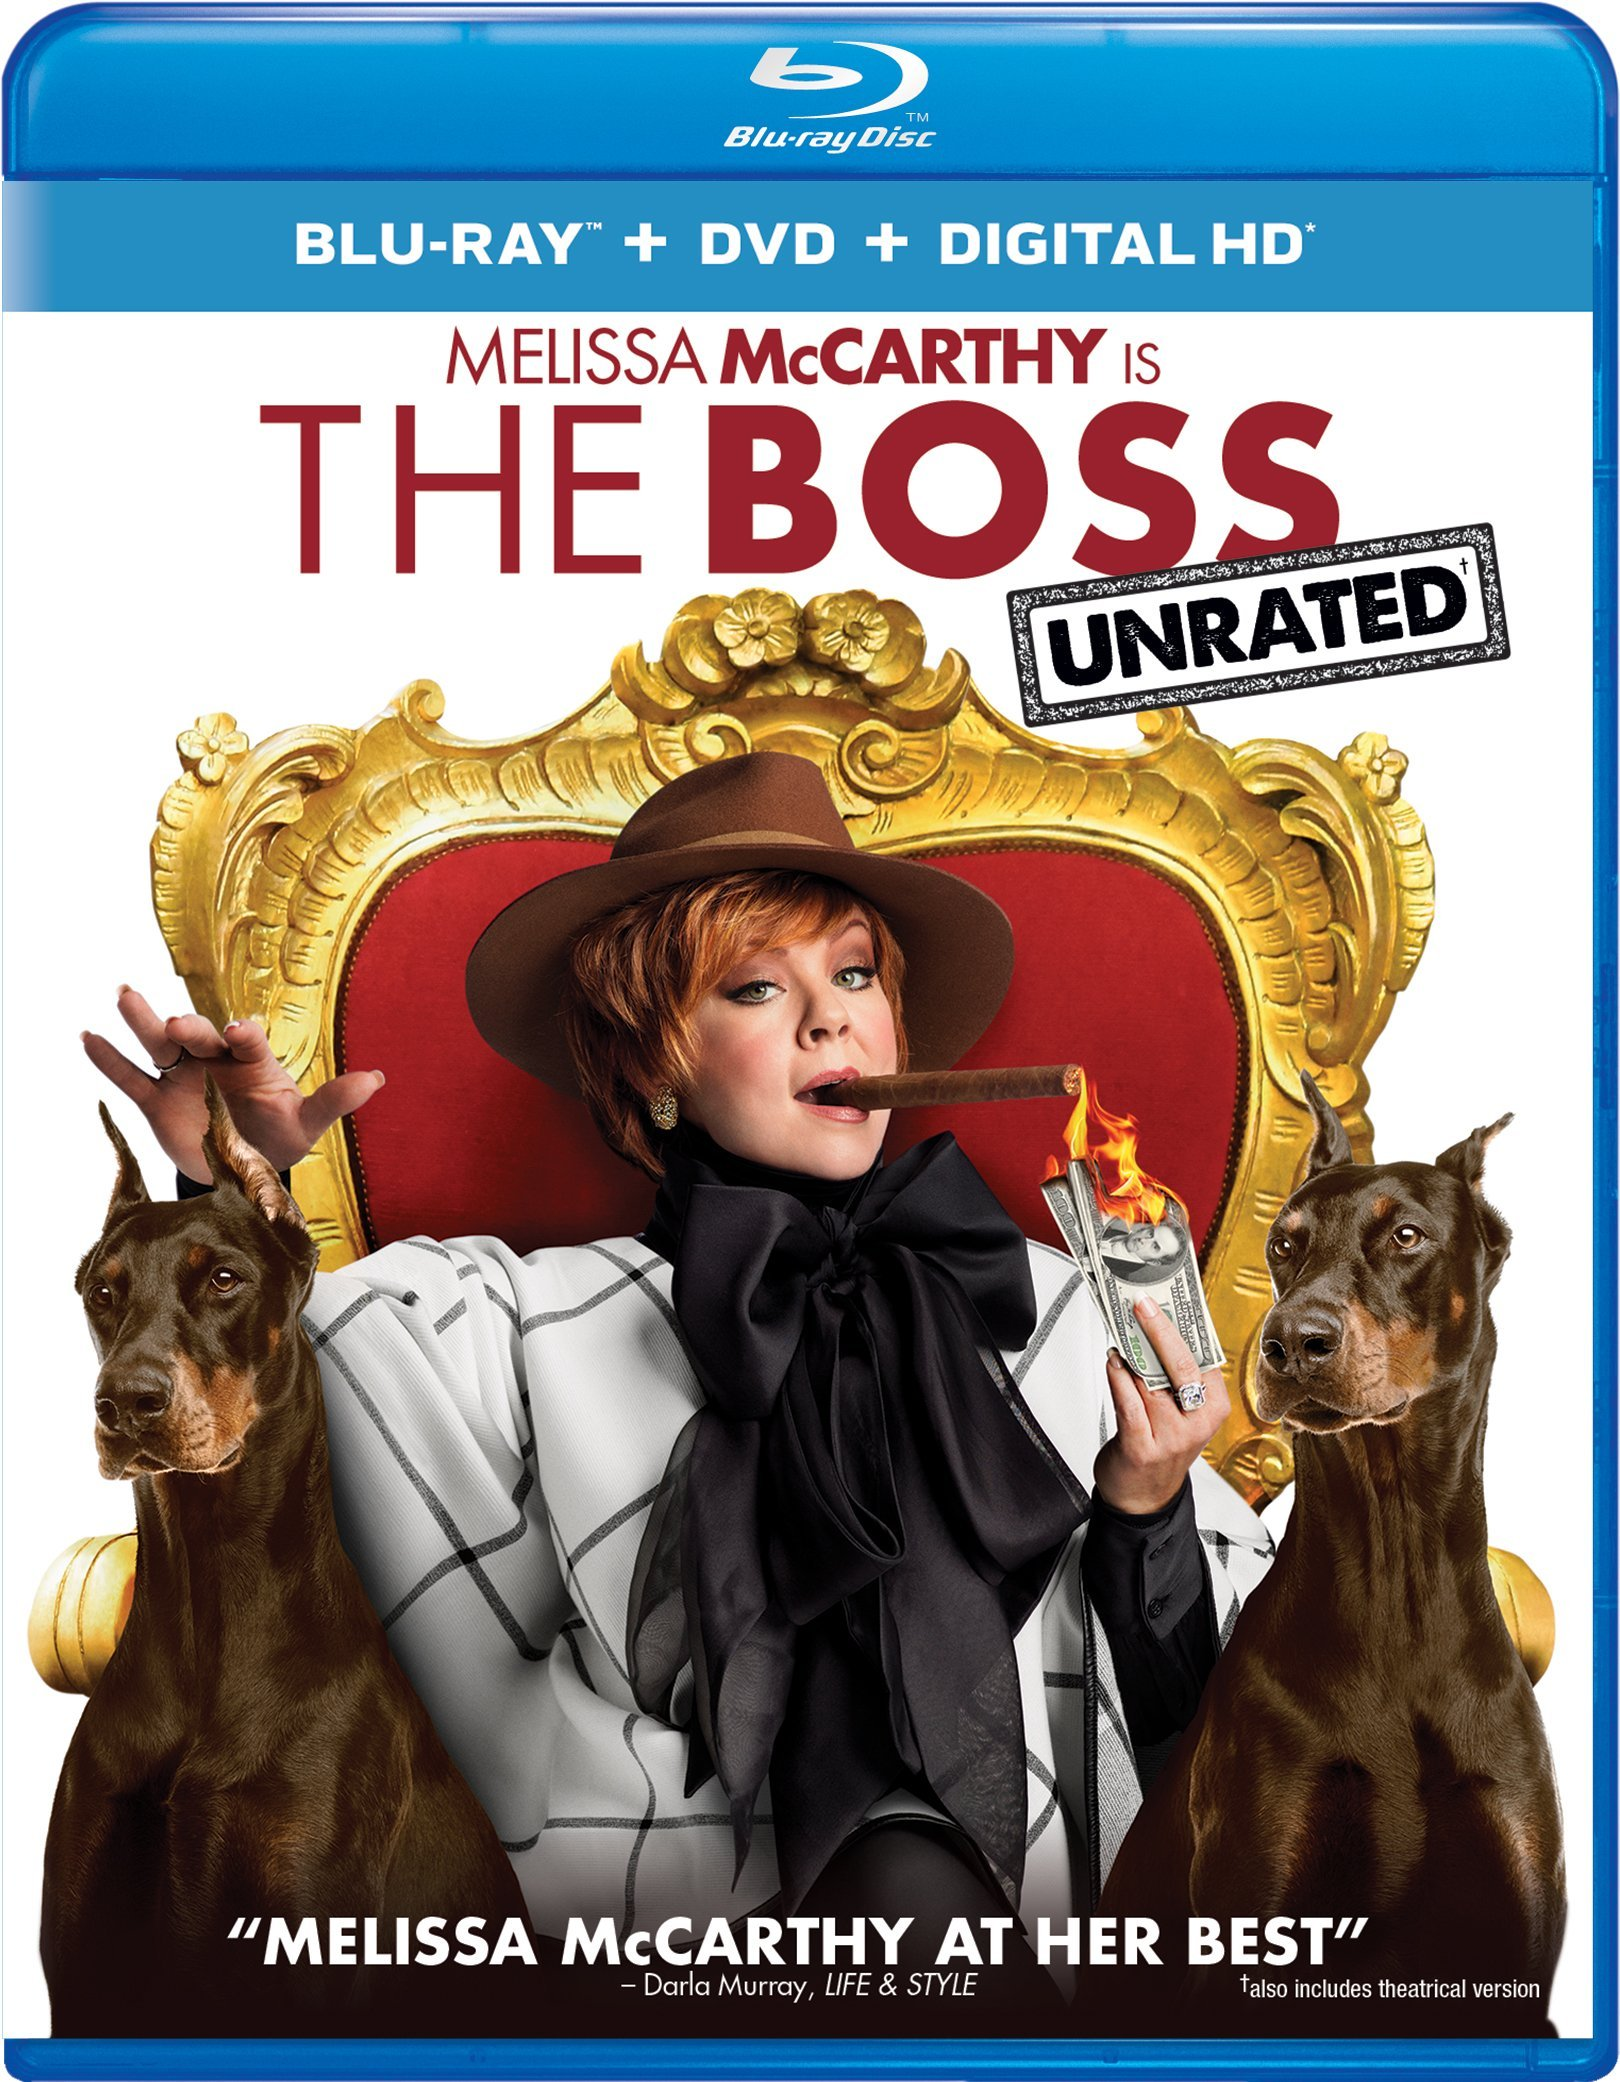 Blu-ray : The Boss (With DVD, Ultraviolet Digital Copy, 2 Pack, Snap Case, Slipsleeve Packaging)